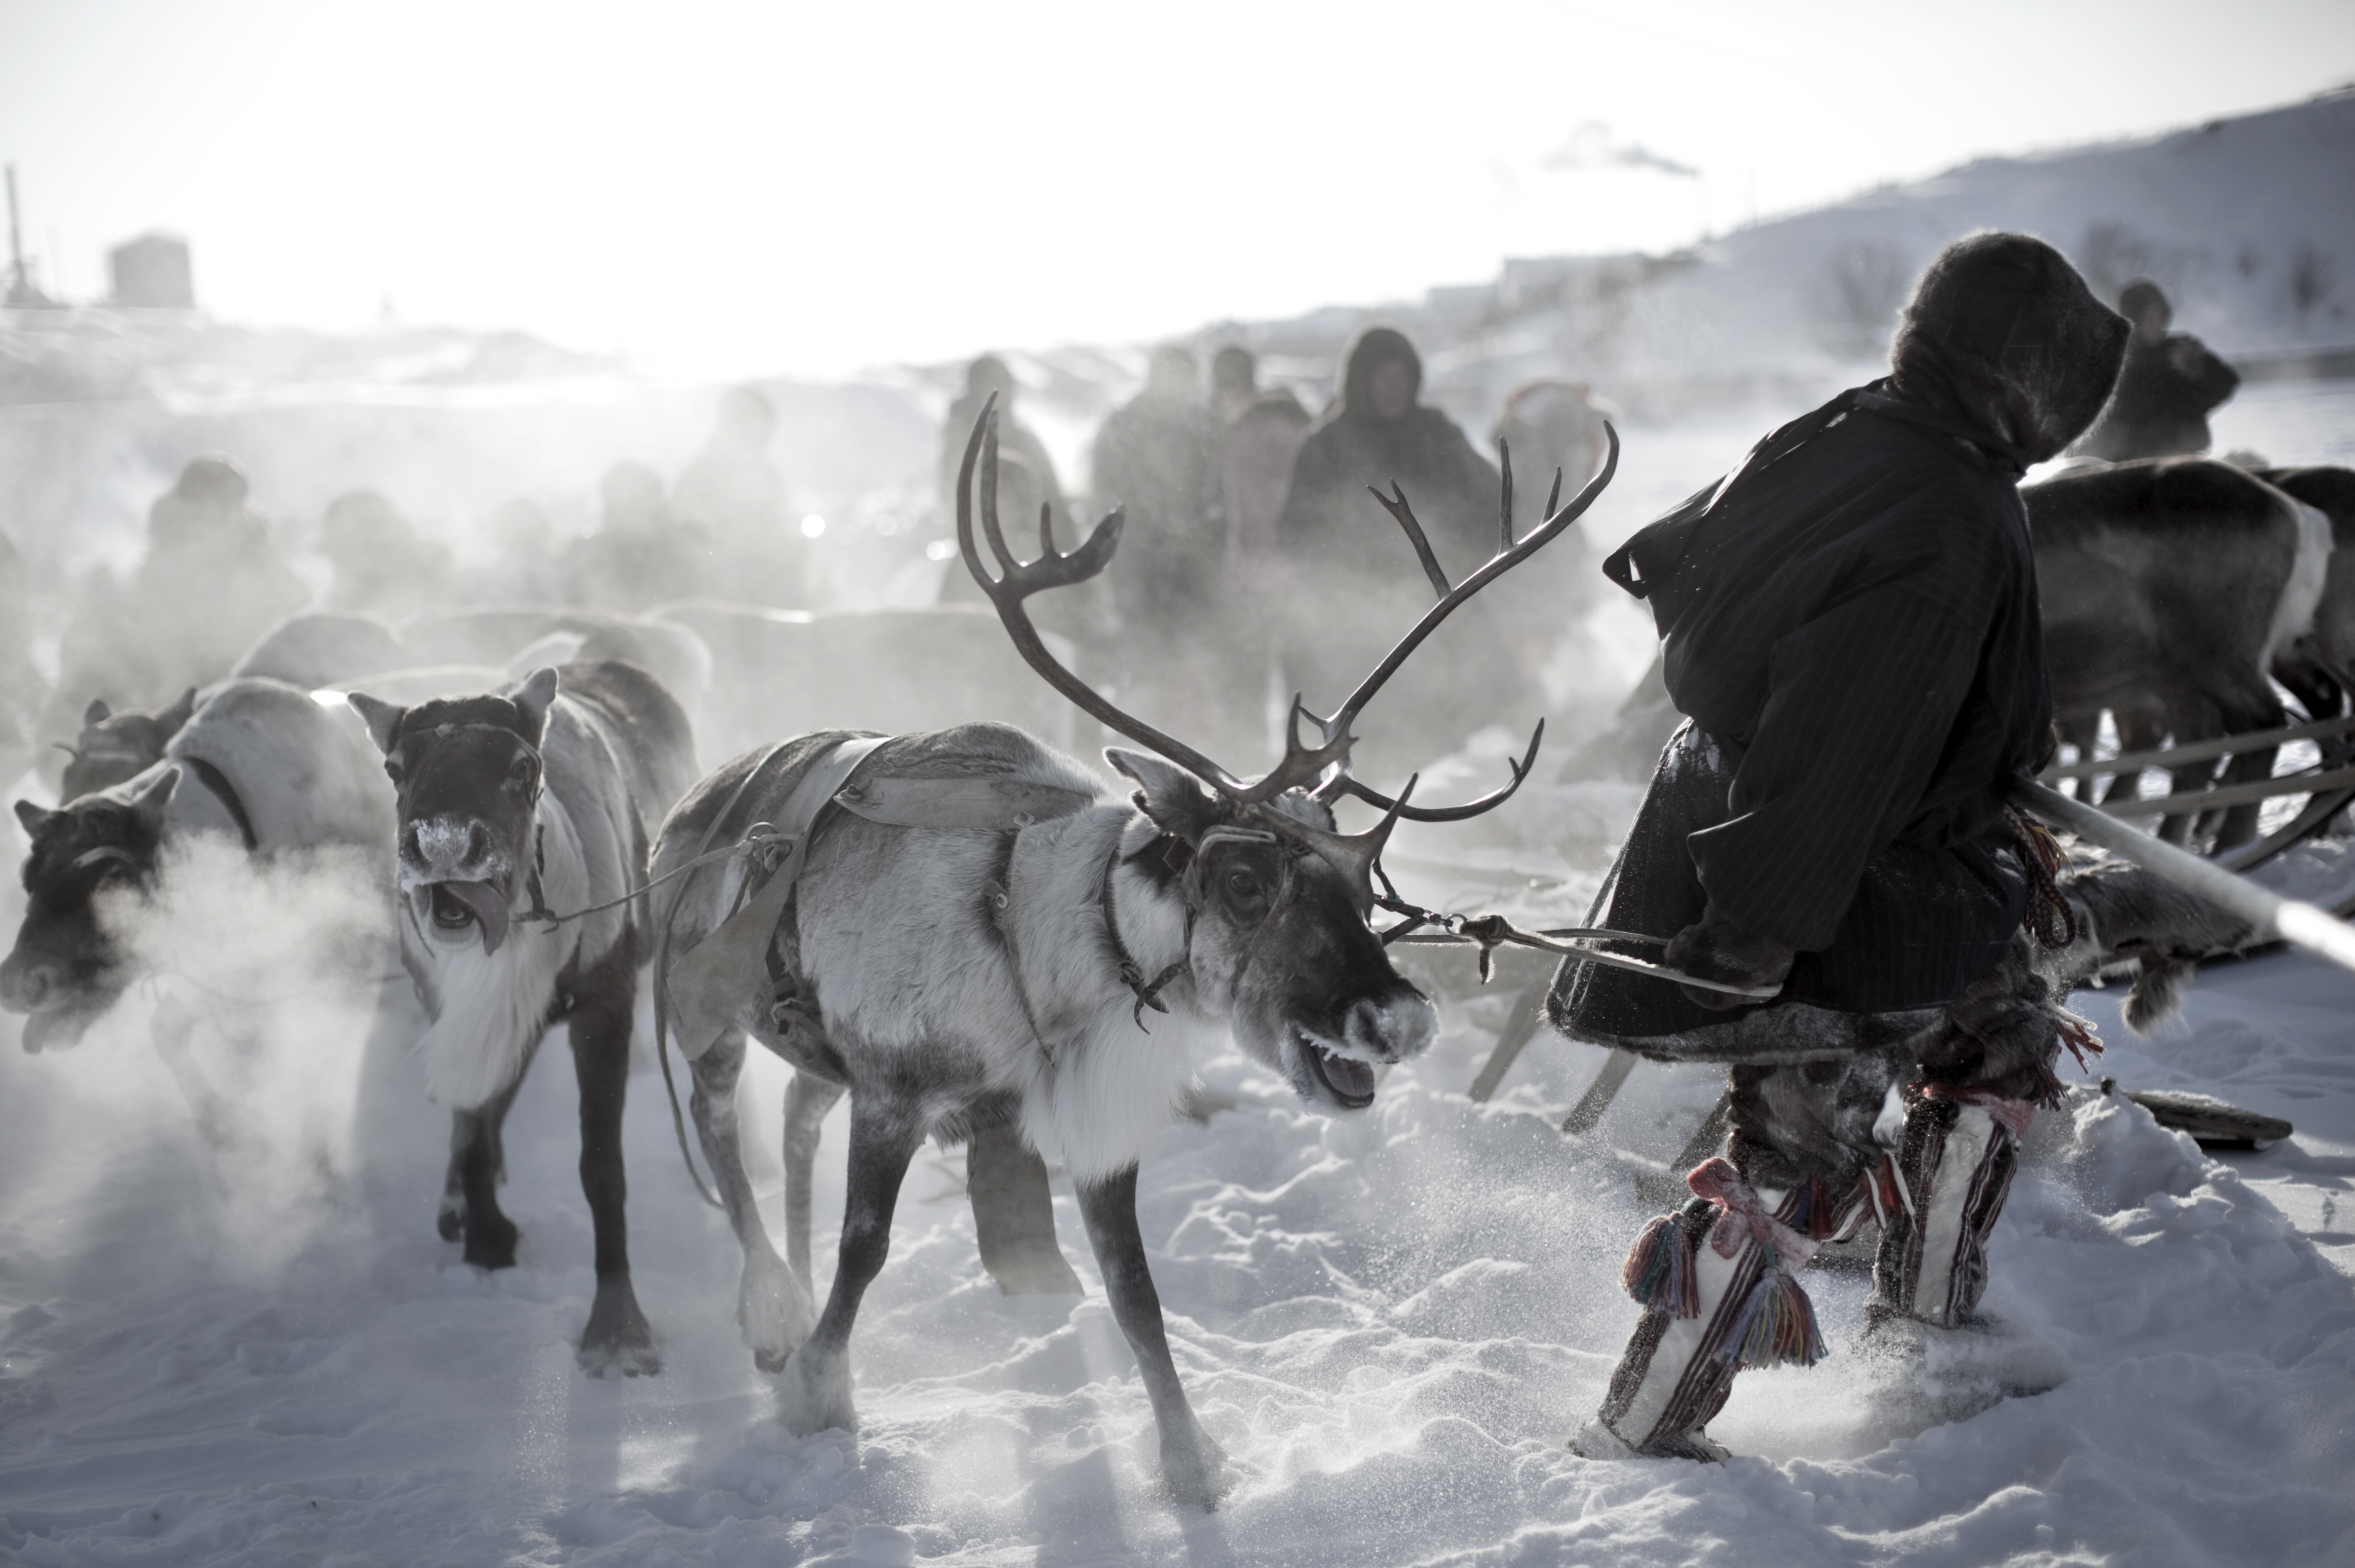 Nenet men hold a reindeer race. Photo by PW PIX/Getty Images)